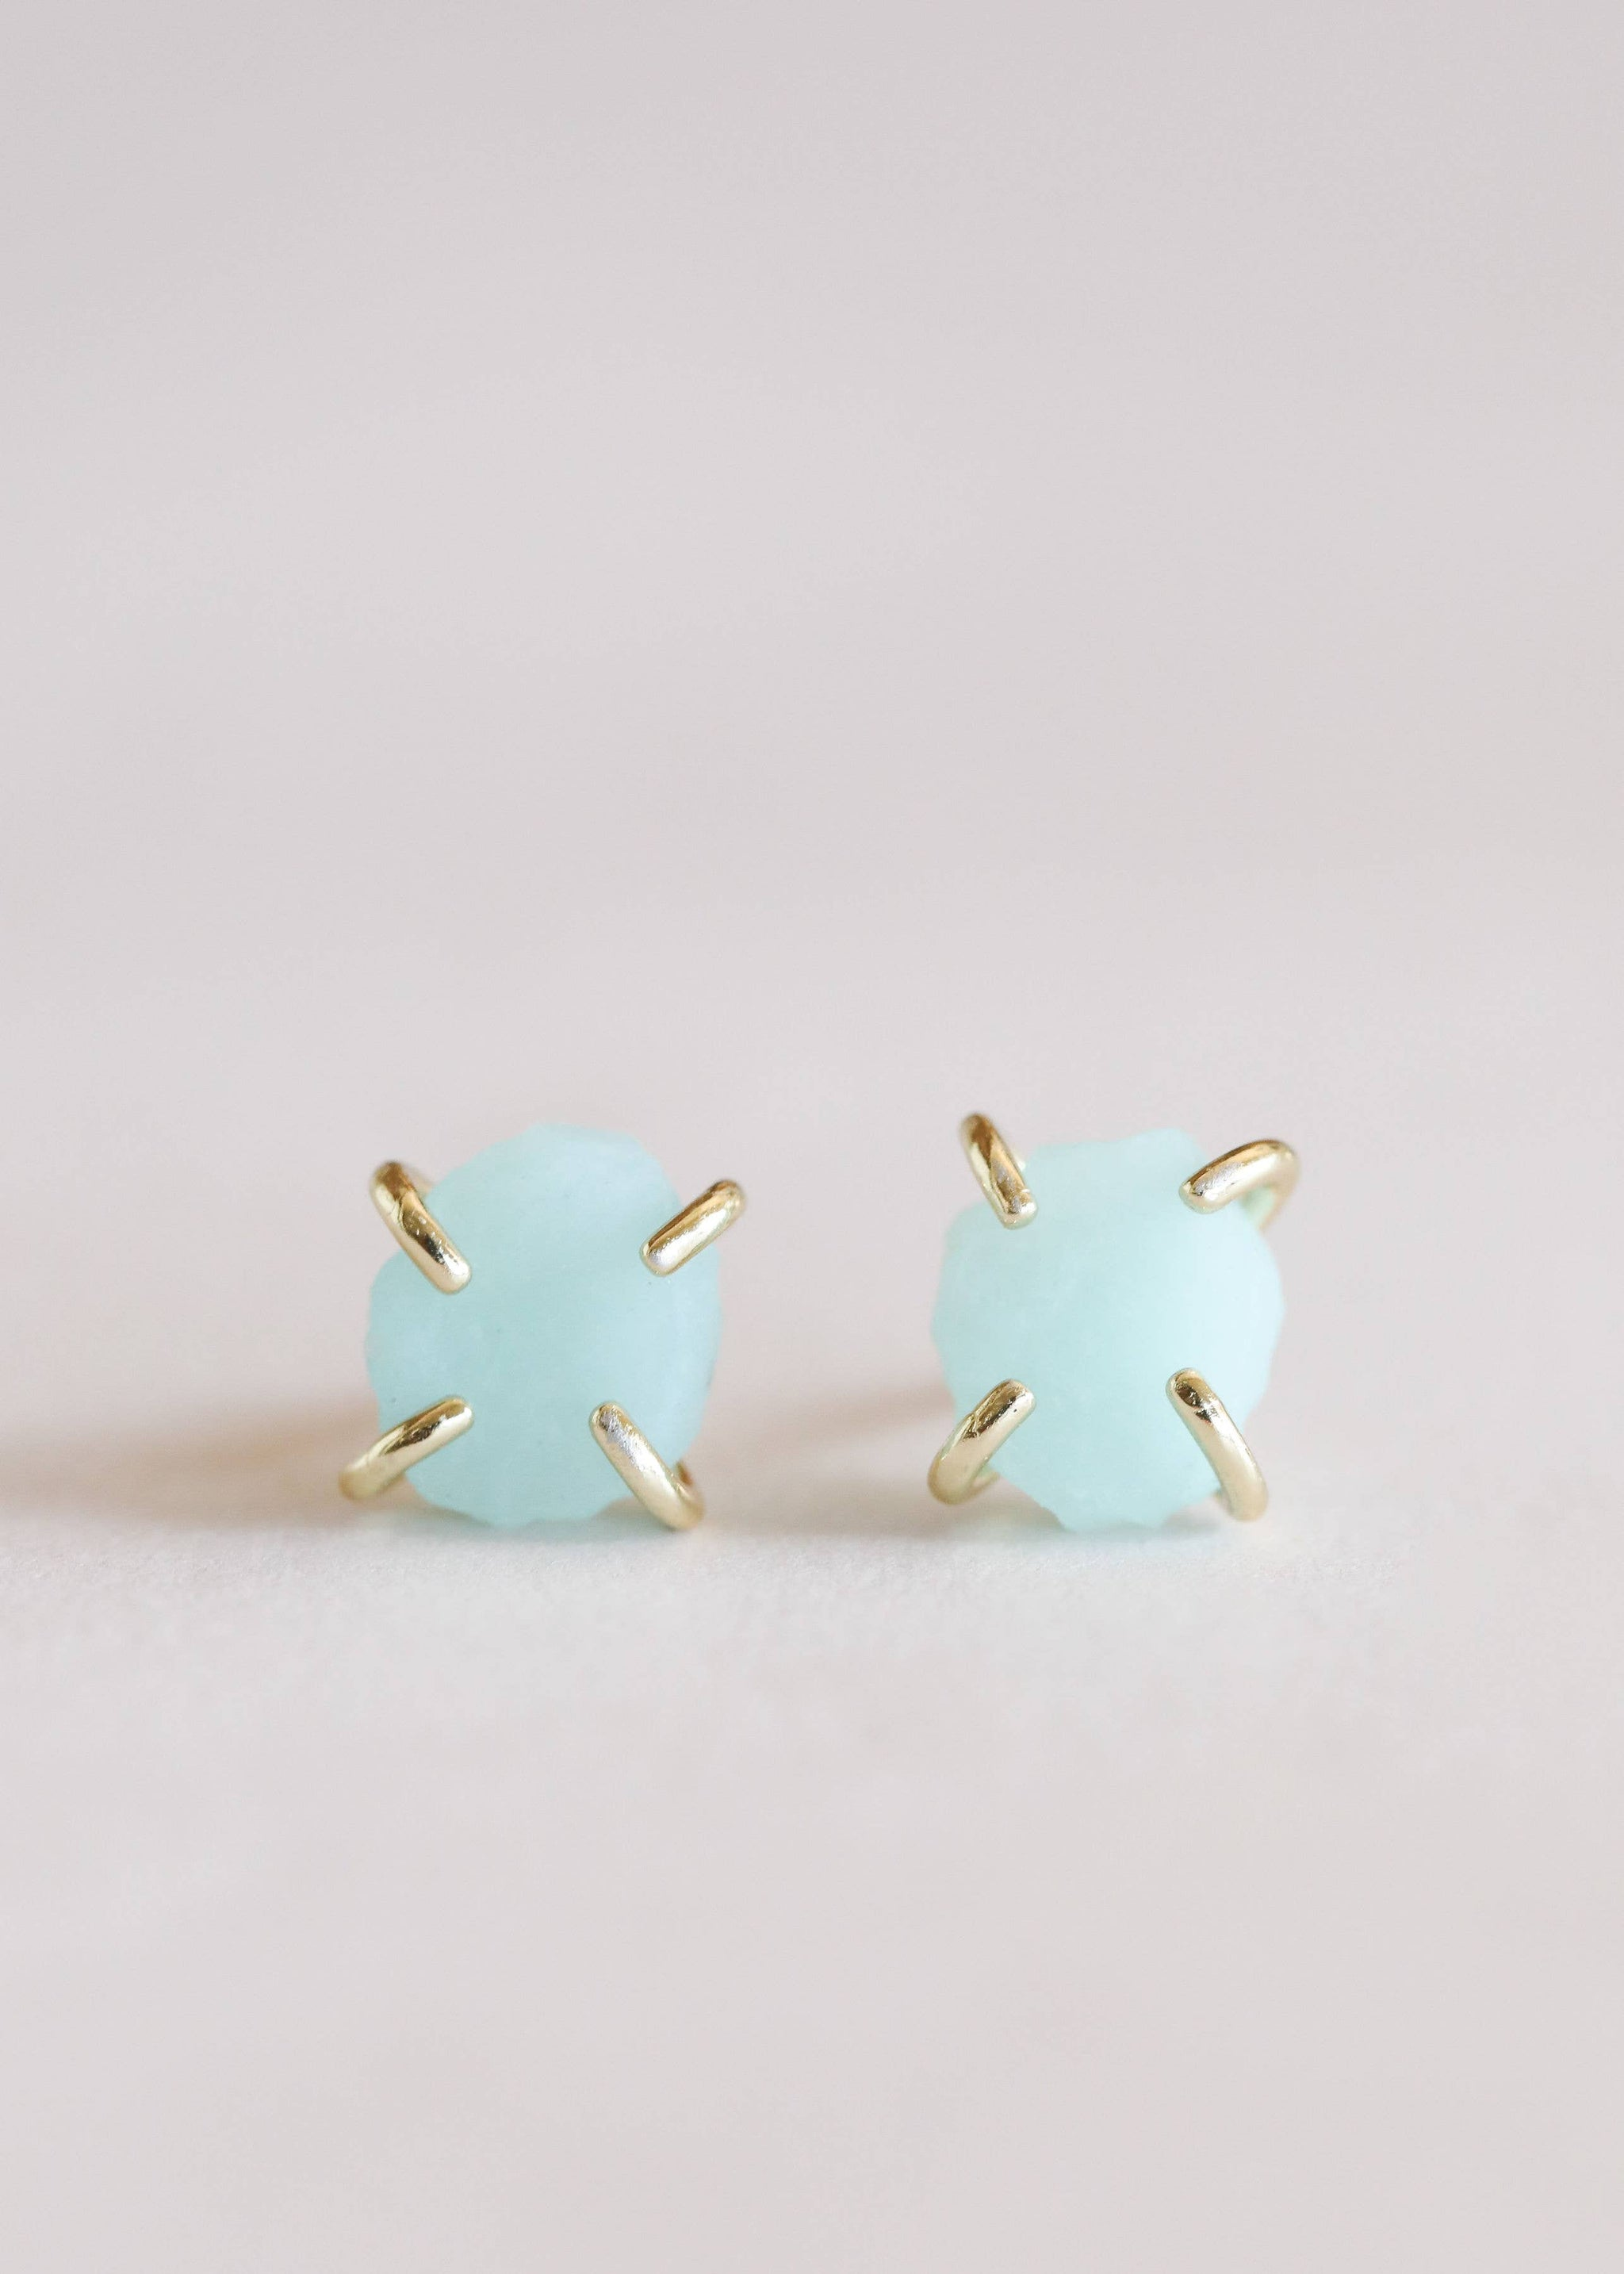 Amazonite Gemstone Prong Earrings - The Lake and Company